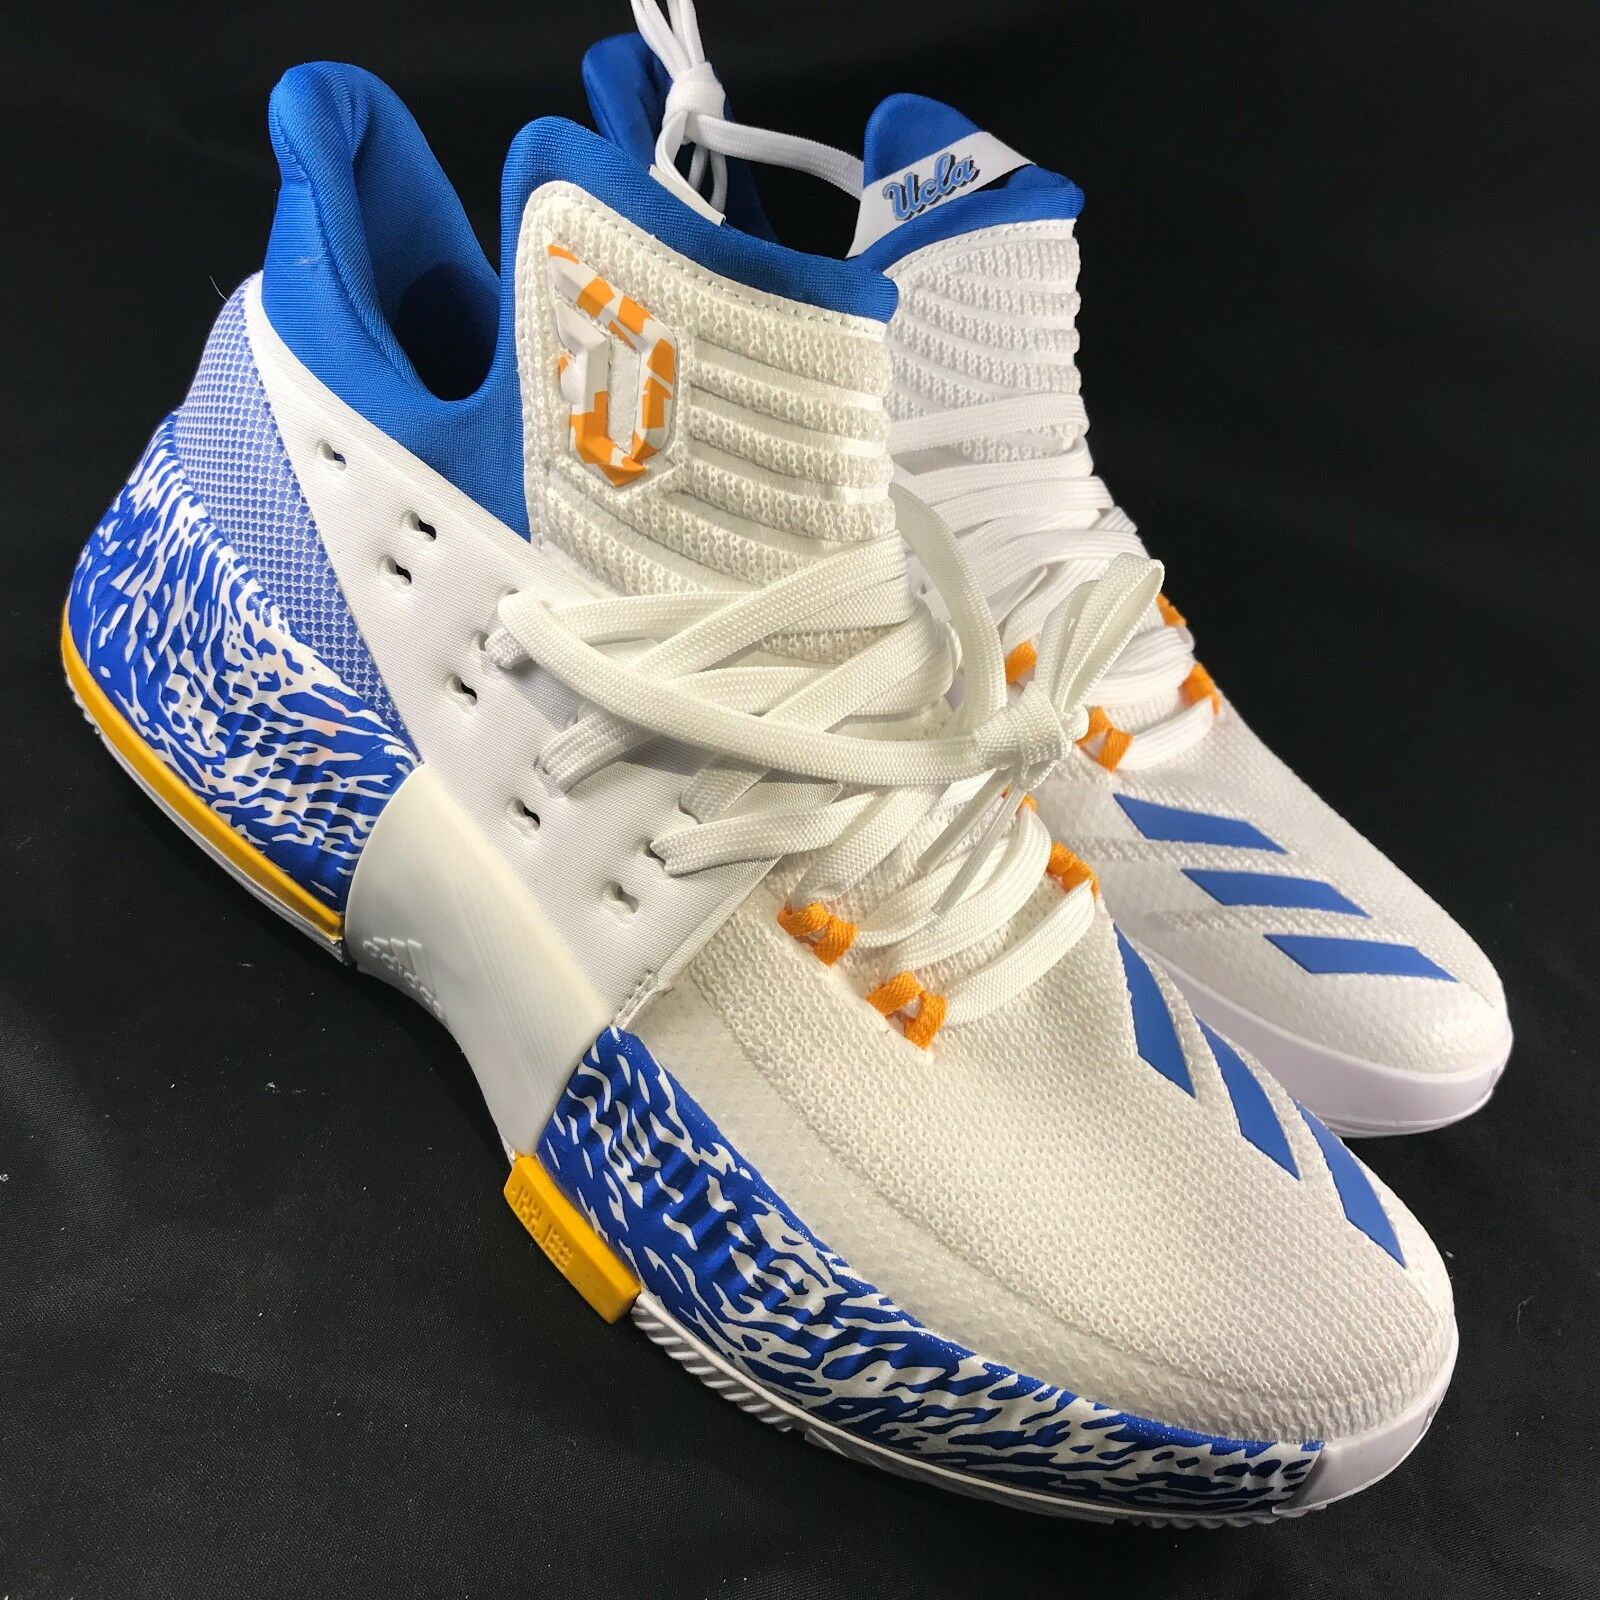 Adidas Damian Lillard 3 UCLA March Madness SM CRAZY TIME Development Sample 9 US